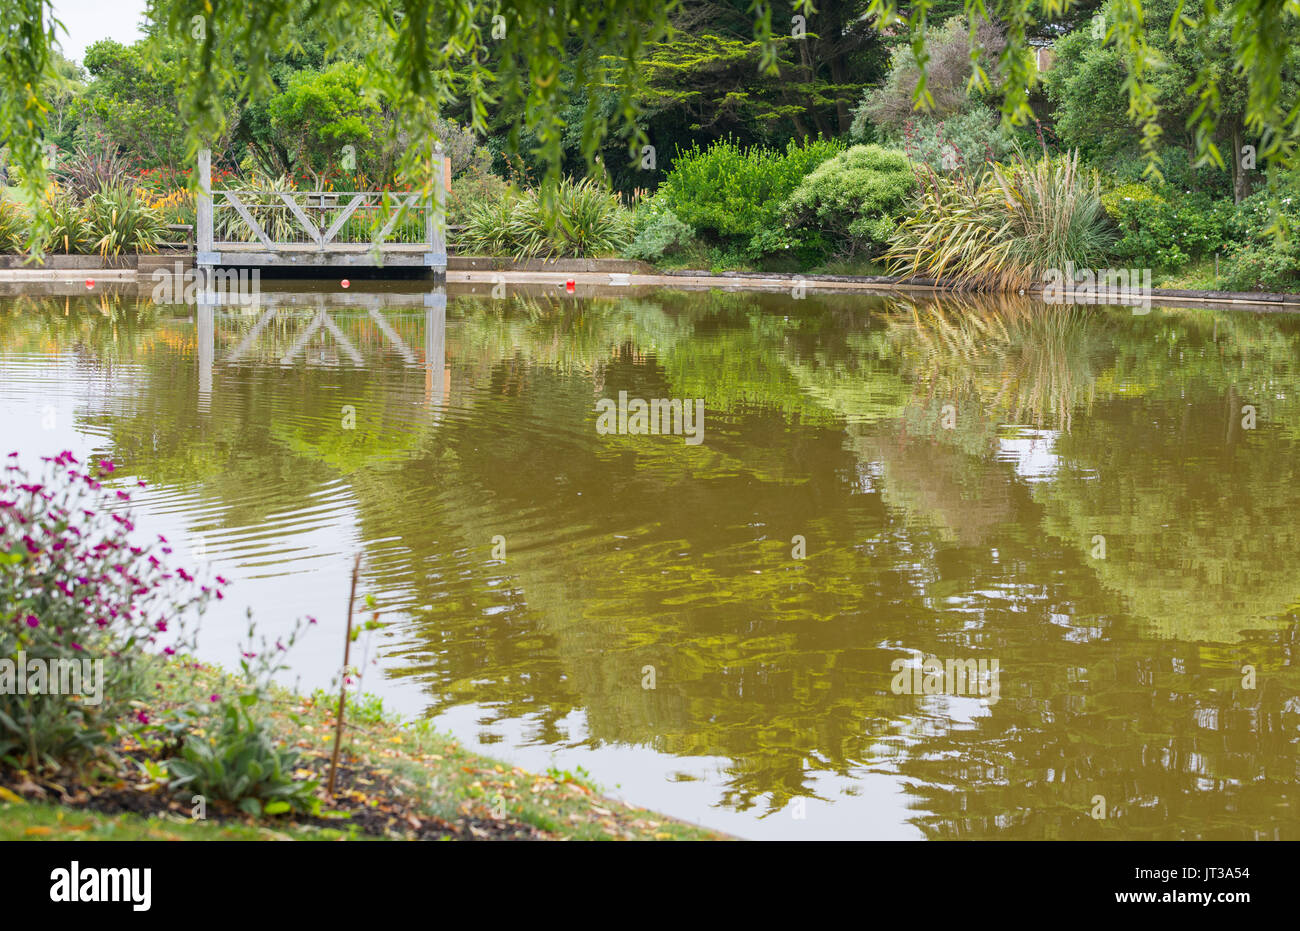 Brown discoloured water in Mewsbrook Park lake in Littlehampton, West Sussex, UK, during hot Summer weather. - Stock Image